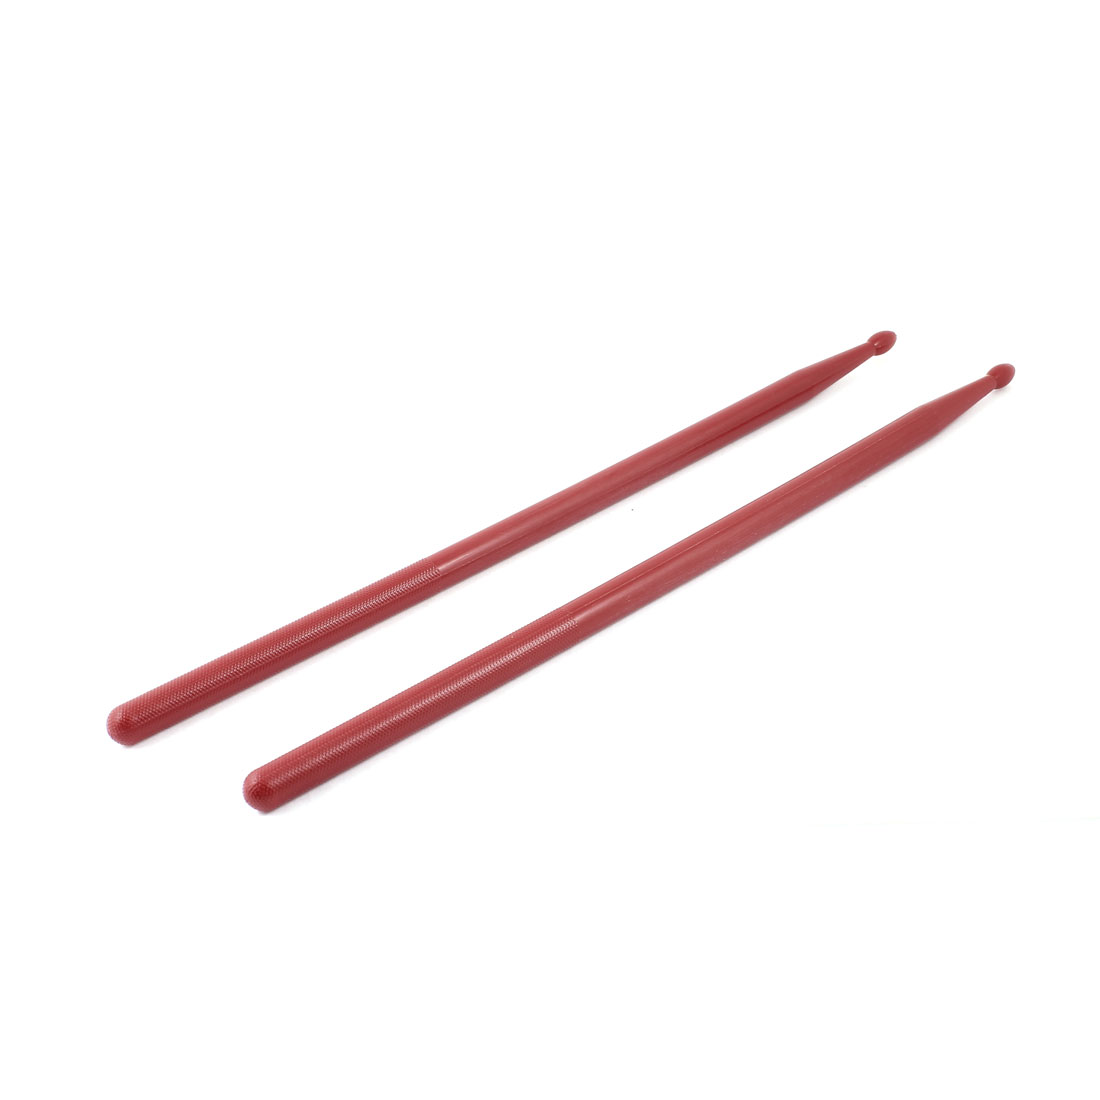 5A Nonslip Grip Music Band Plastic Drum Rod Sticks Drumsticks Red 2 Pcs